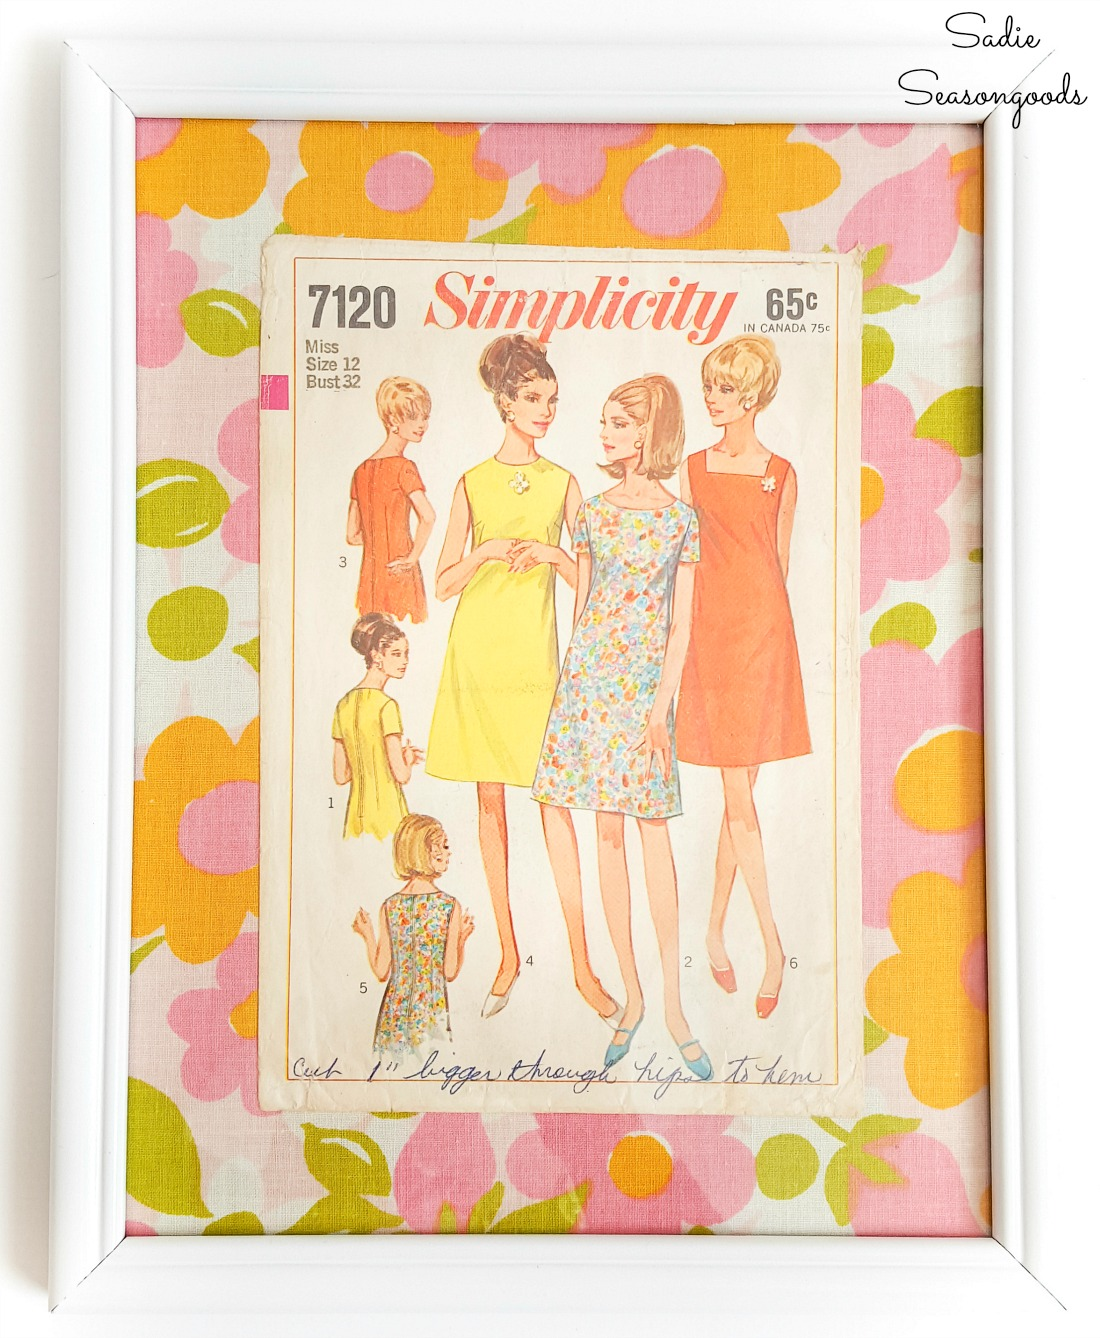 Fashion wall art with vintage sheets and Simplicity sewing patterns